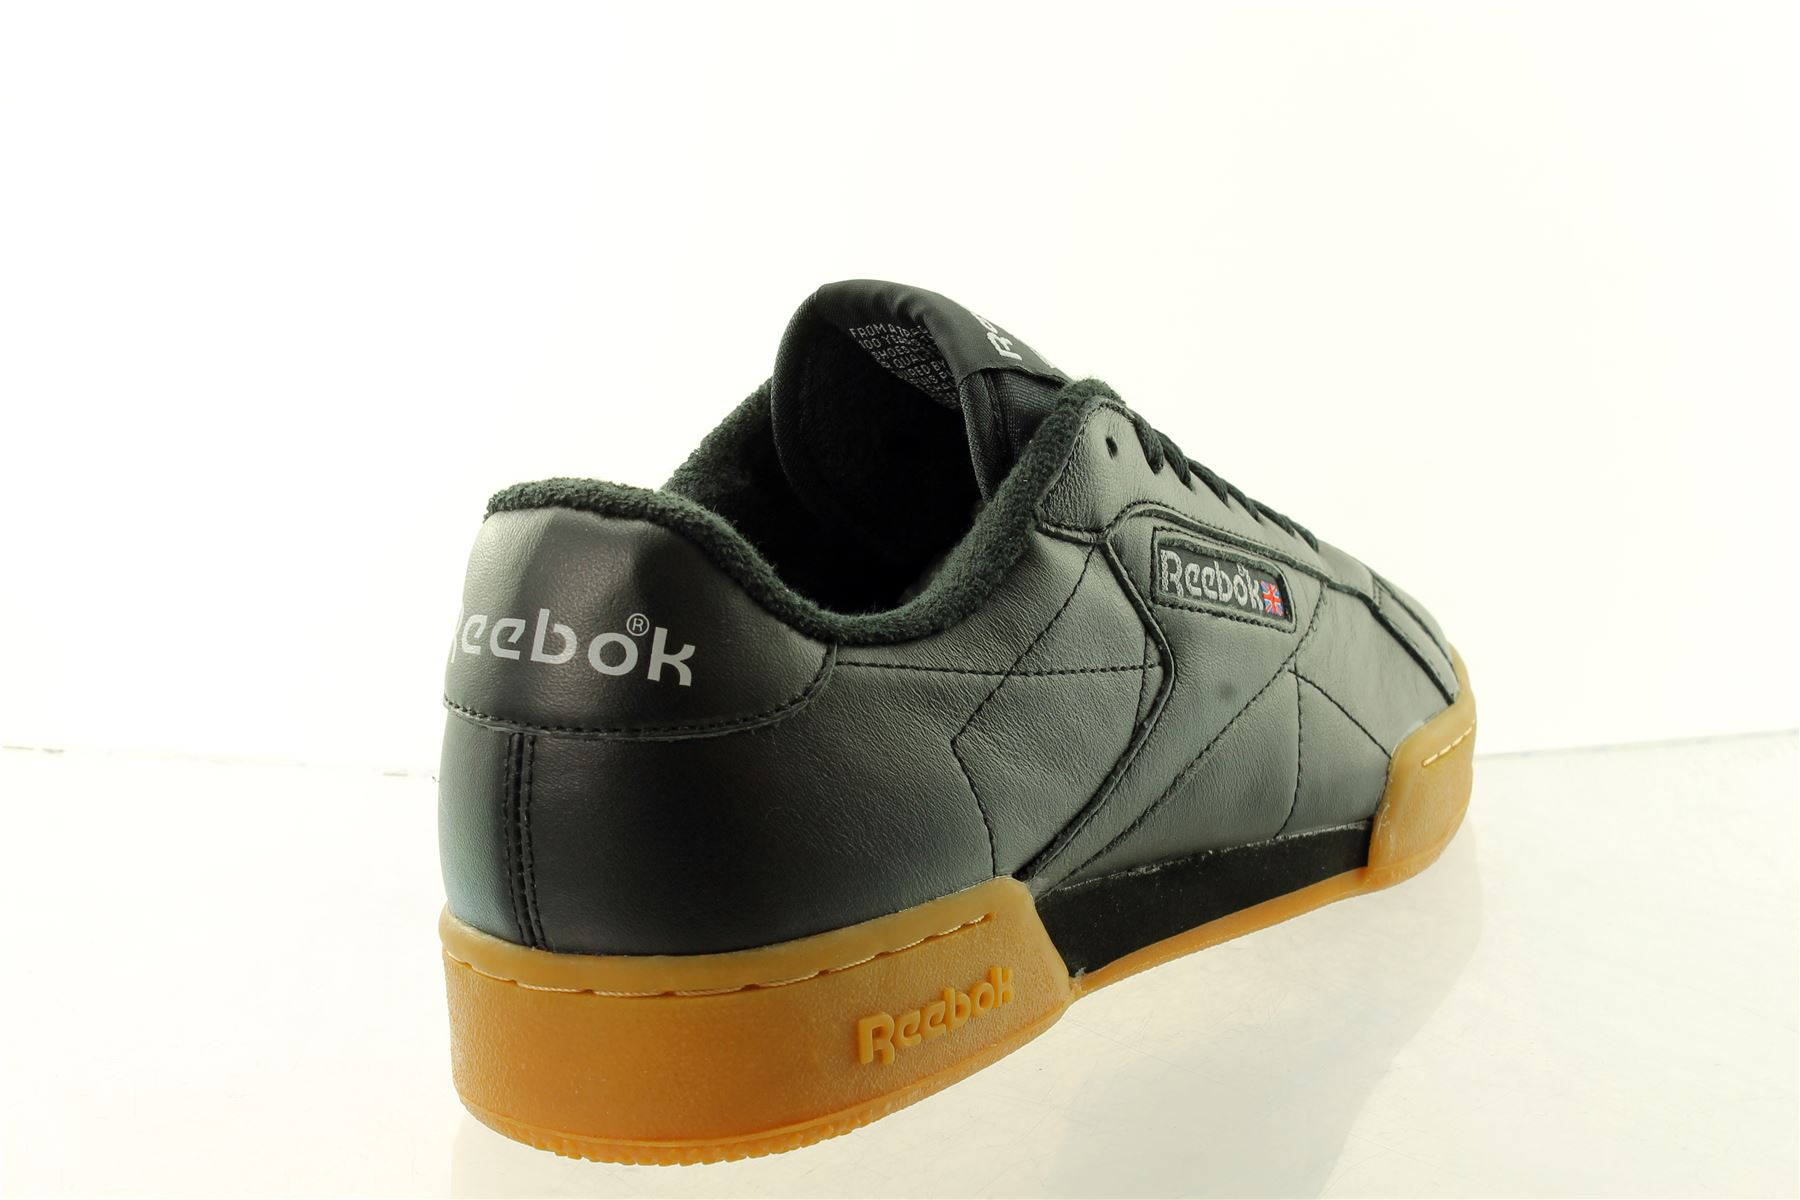 Reebok NPC II Shield cuir baskets homme rrp 62 uk 4 a 12 prix de vente